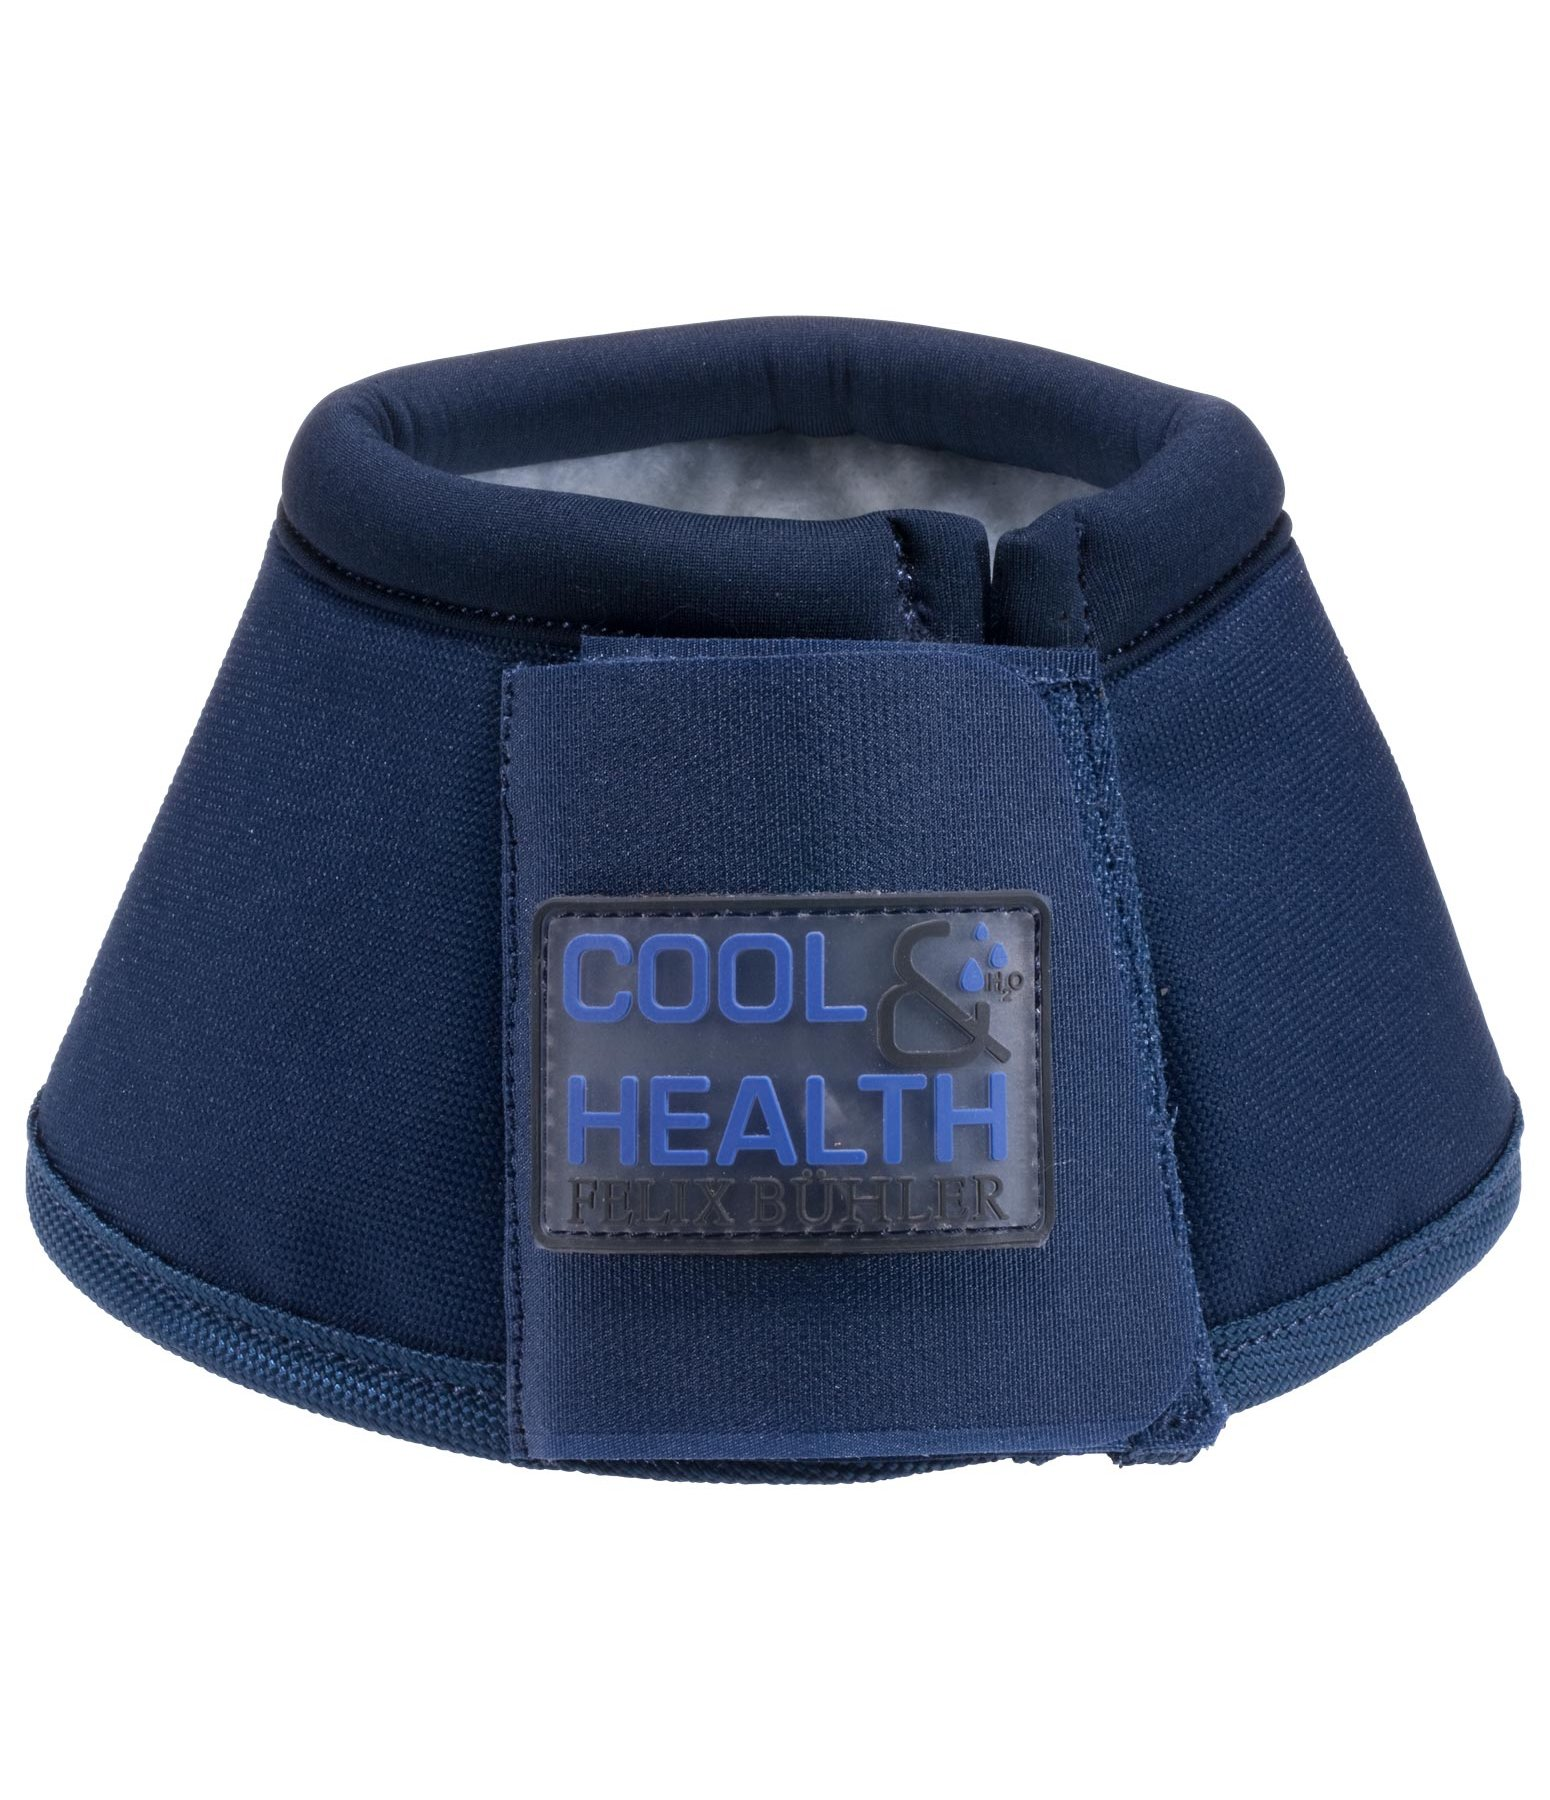 COOL & HEALTH Bell Boots